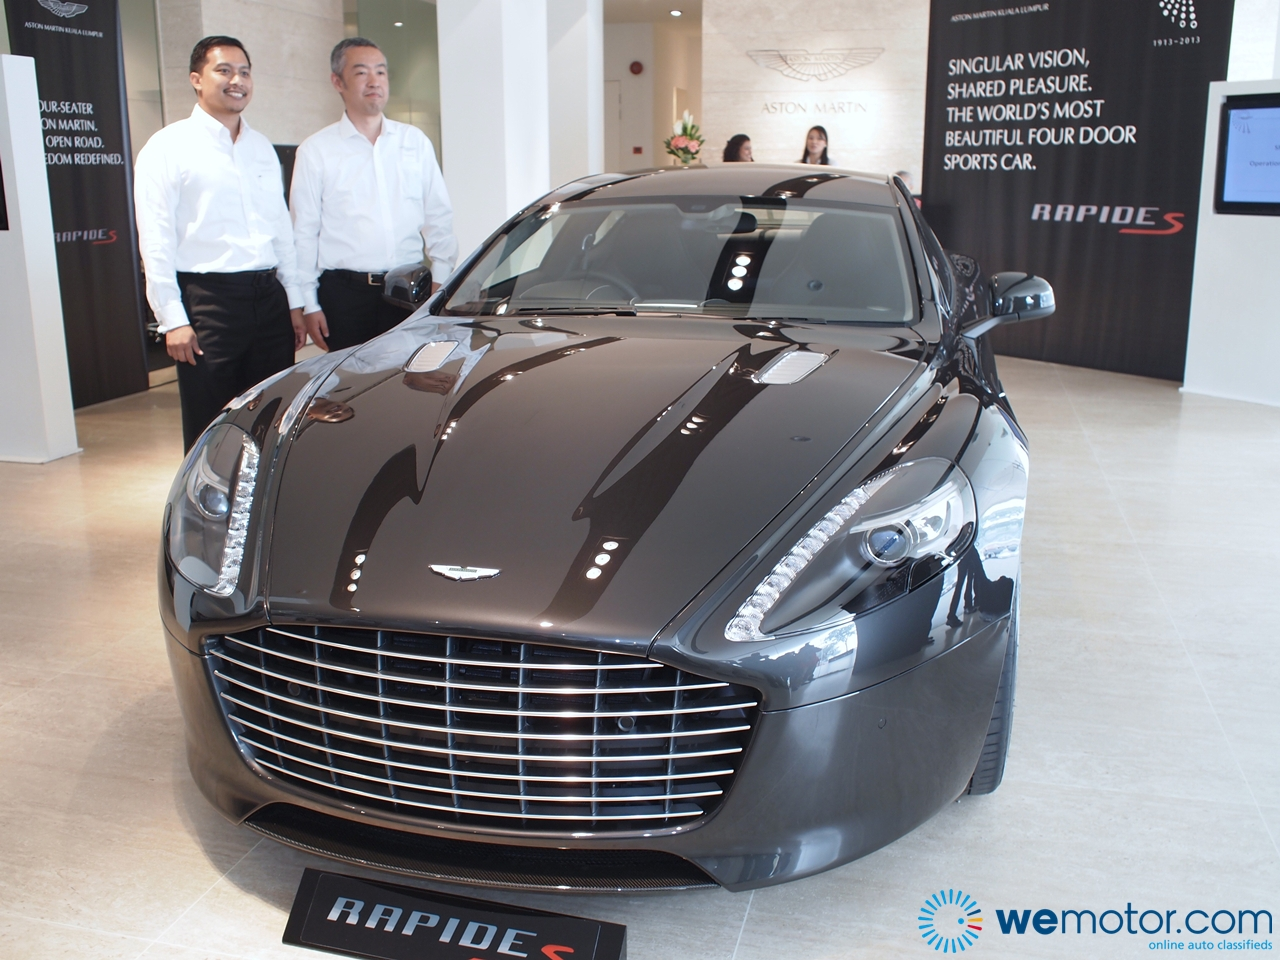 2014 aston martin rapide s launched - price starts from rm1